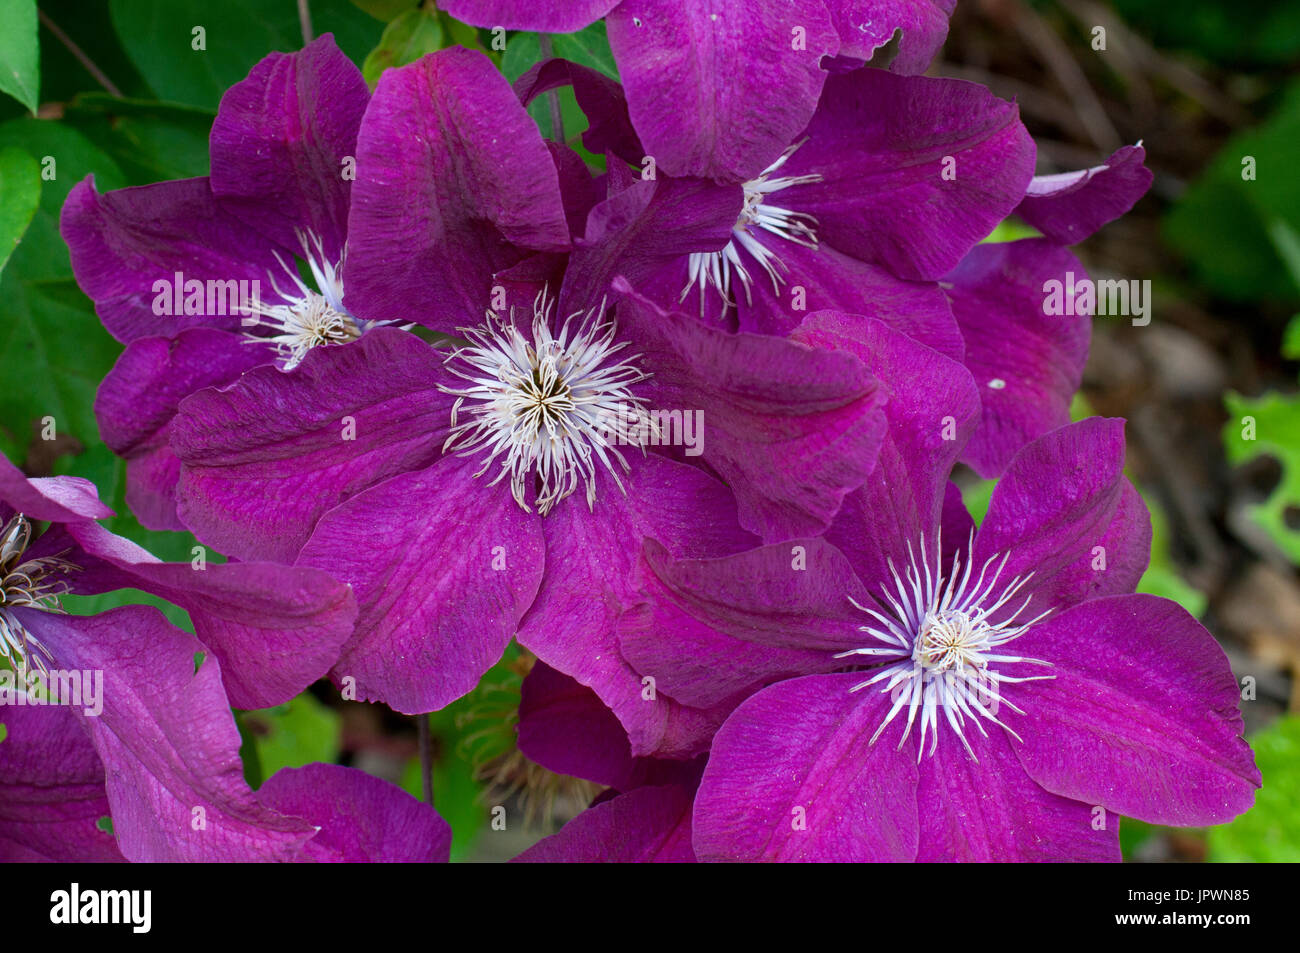 clematis rouge cardinal stock photos clematis rouge. Black Bedroom Furniture Sets. Home Design Ideas